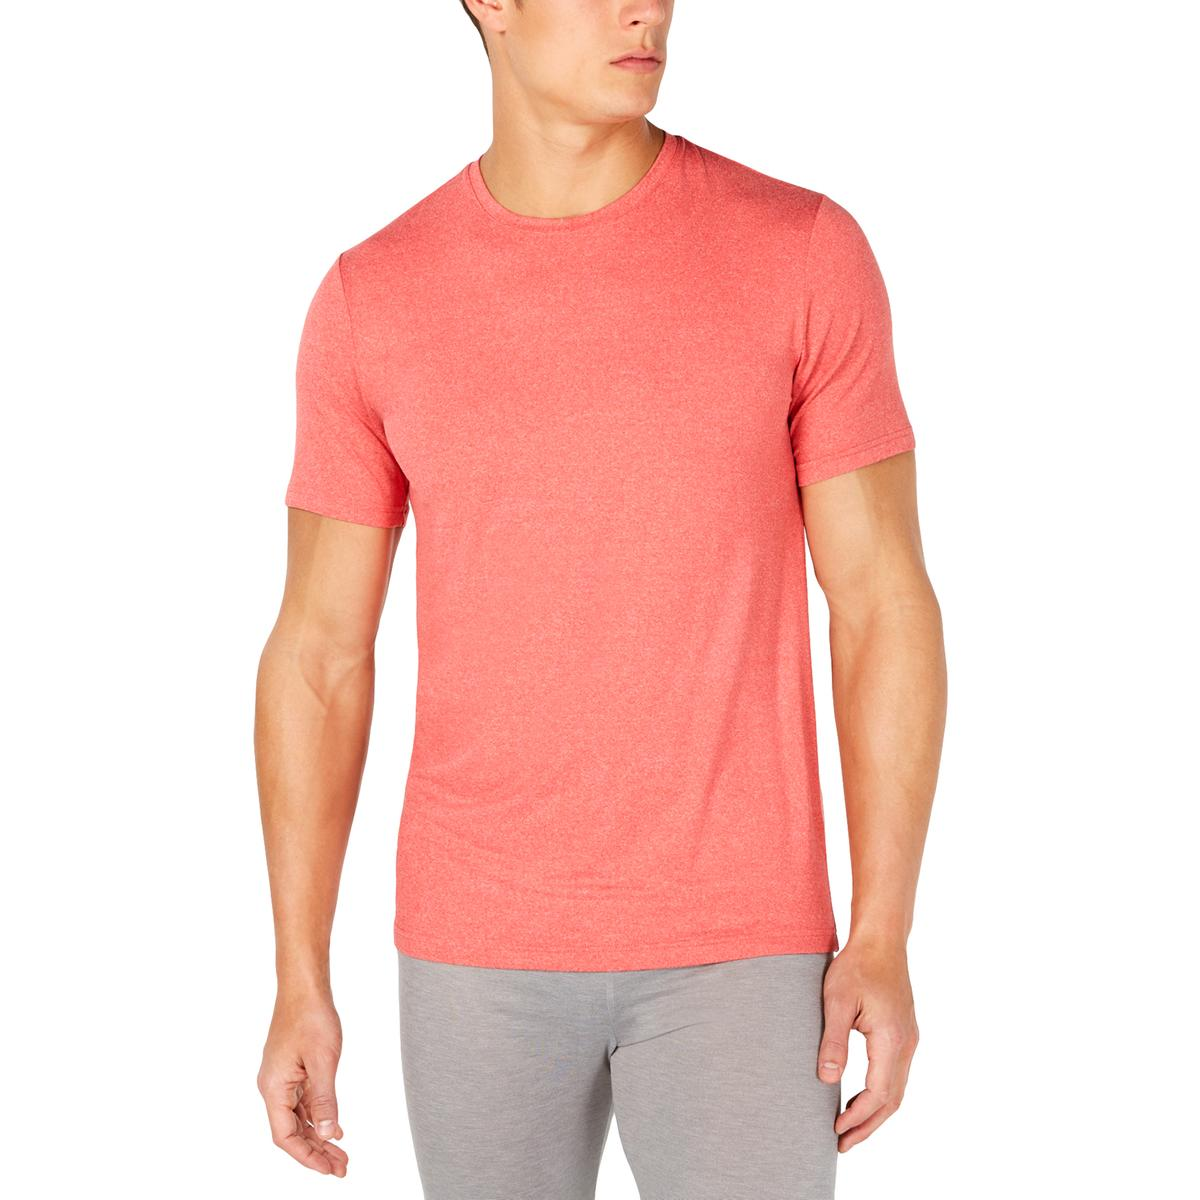 32 Degrees Cool Mens Quick Dry Short Sleeve T-Shirt